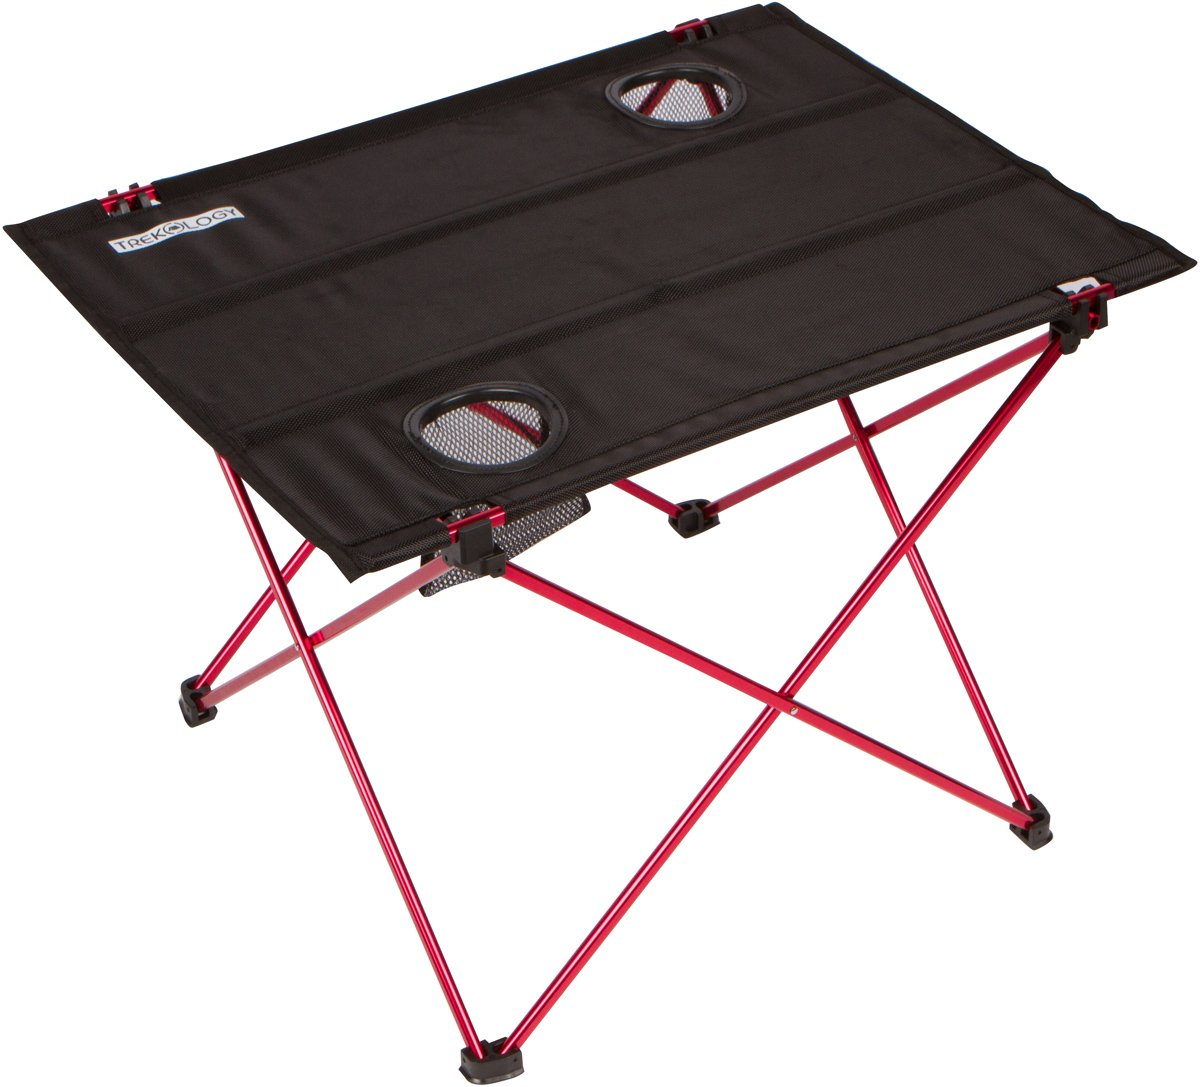 Trekology Foldable Camping Picnic Tables - Portable Compact Lightweight Folding Roll-up Table in a Bag - Small, Light Easy to Carry Camp, Beach, Outdoor by Trekology